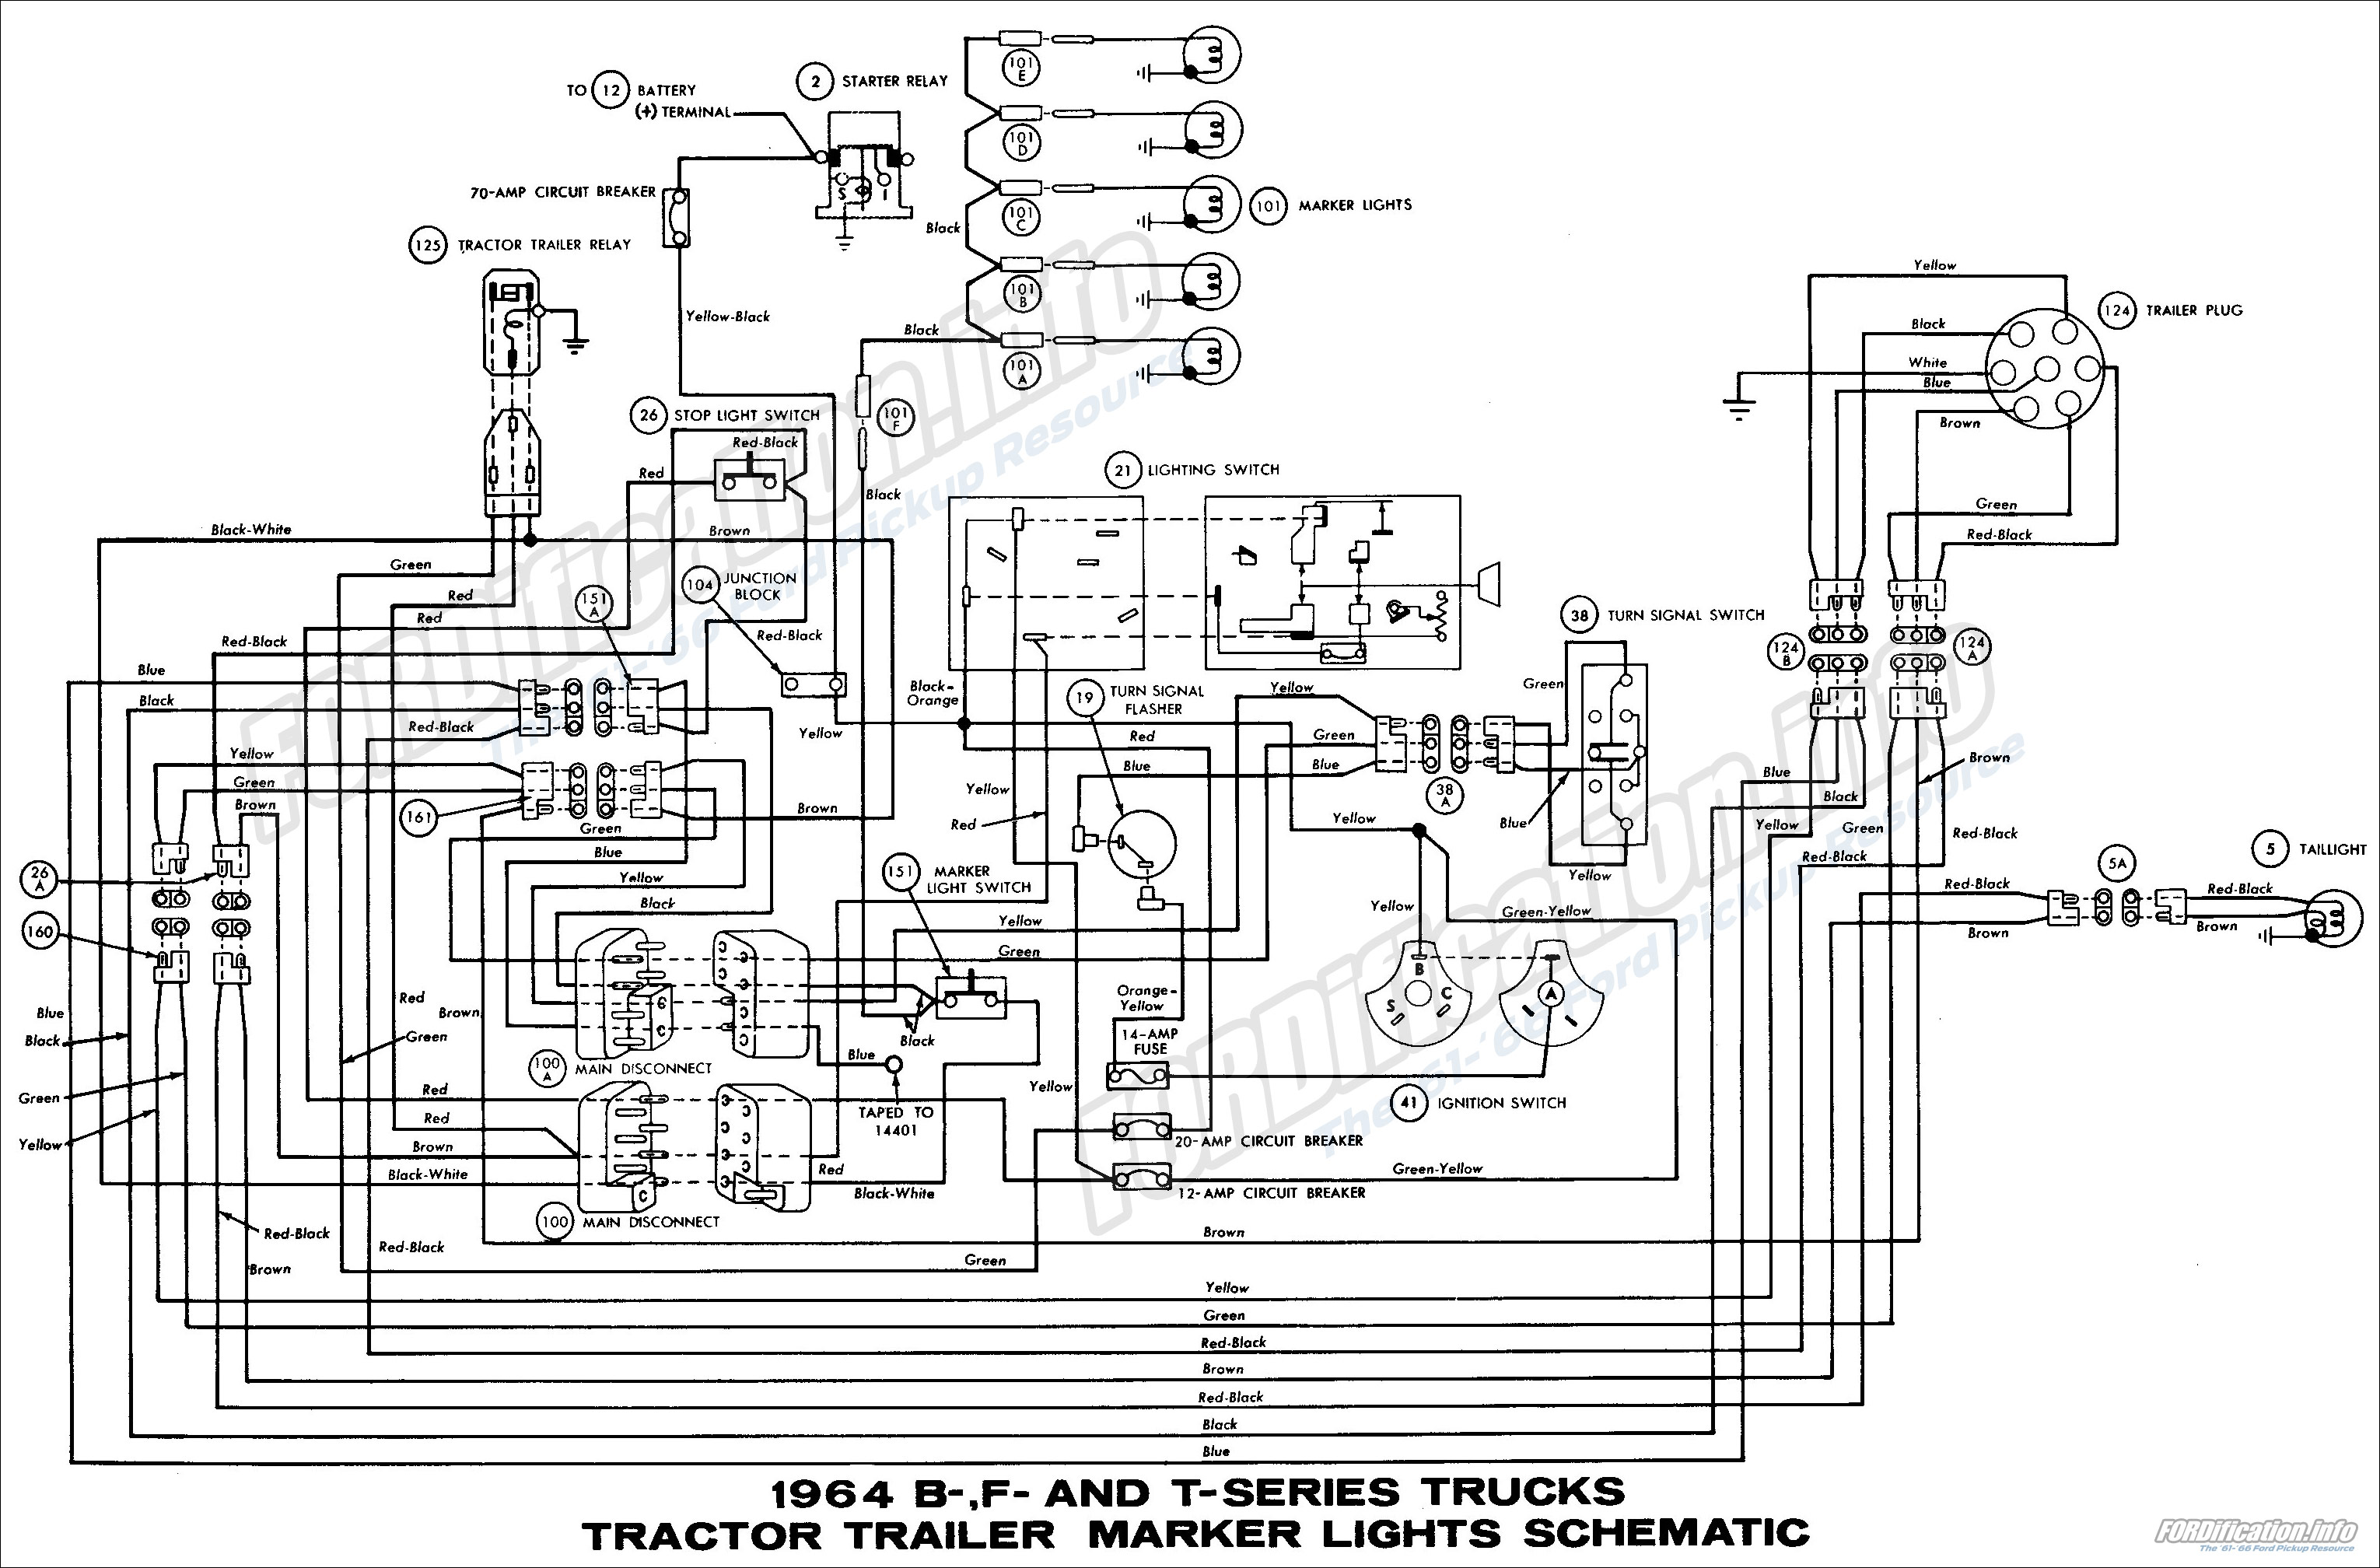 1964 Ford Truck Wiper Switch Wiring Diagram Electrical Diagrams Ignition Trusted Module